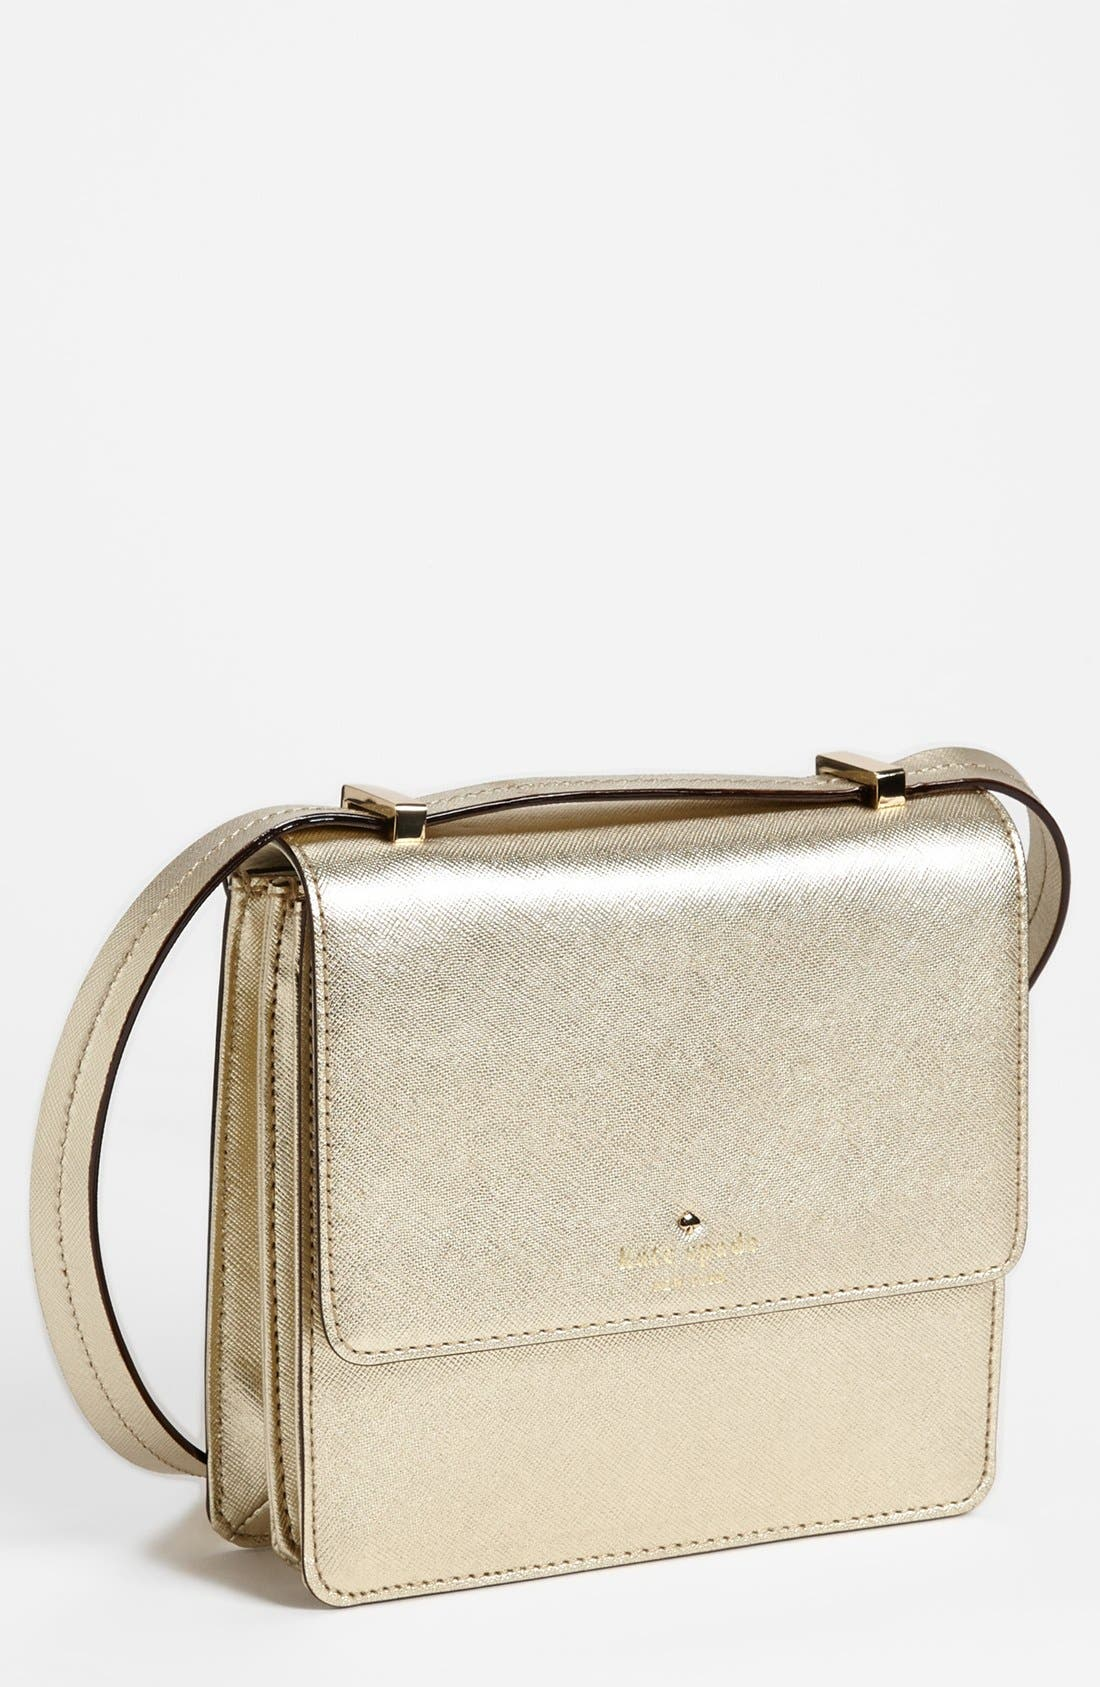 Alternate Image 1 Selected - kate spade new york 'mikas pond - nico' crossbody bag